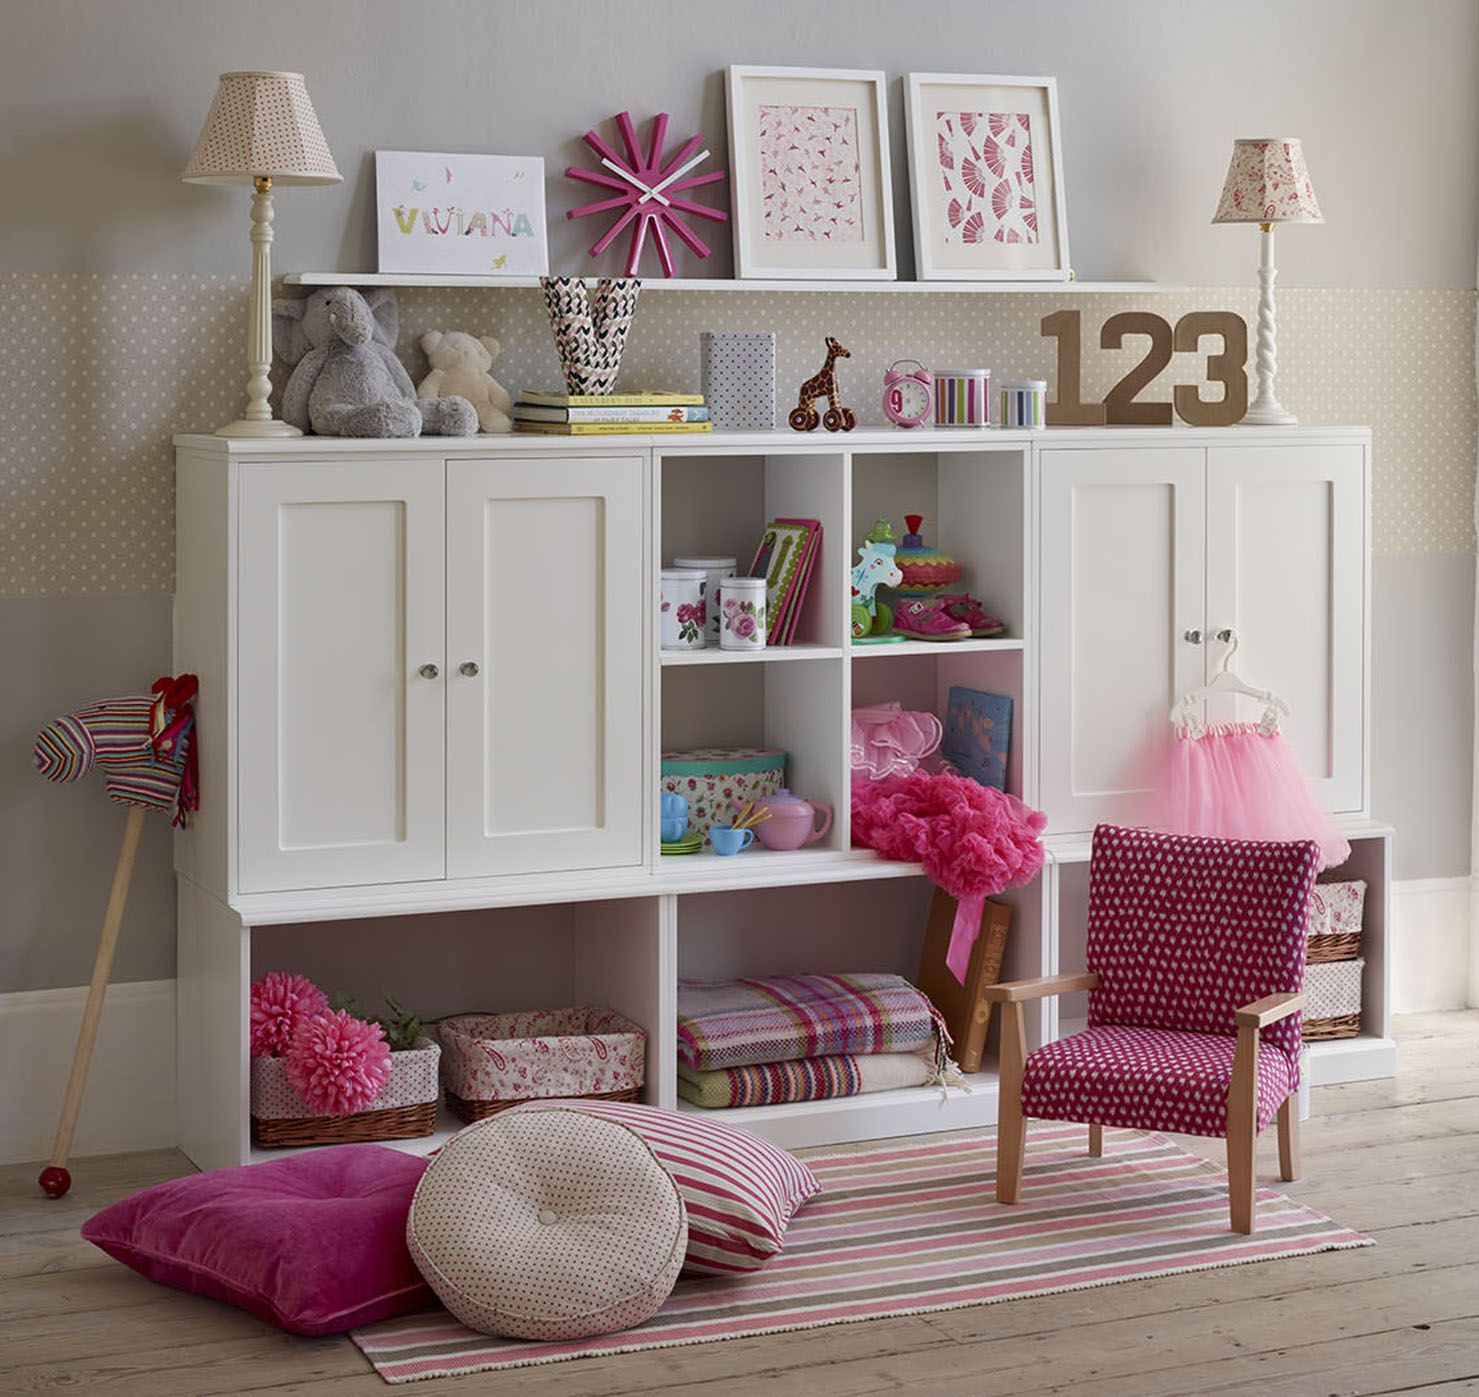 Childrens Room   Wall Storage System   The Dormy House